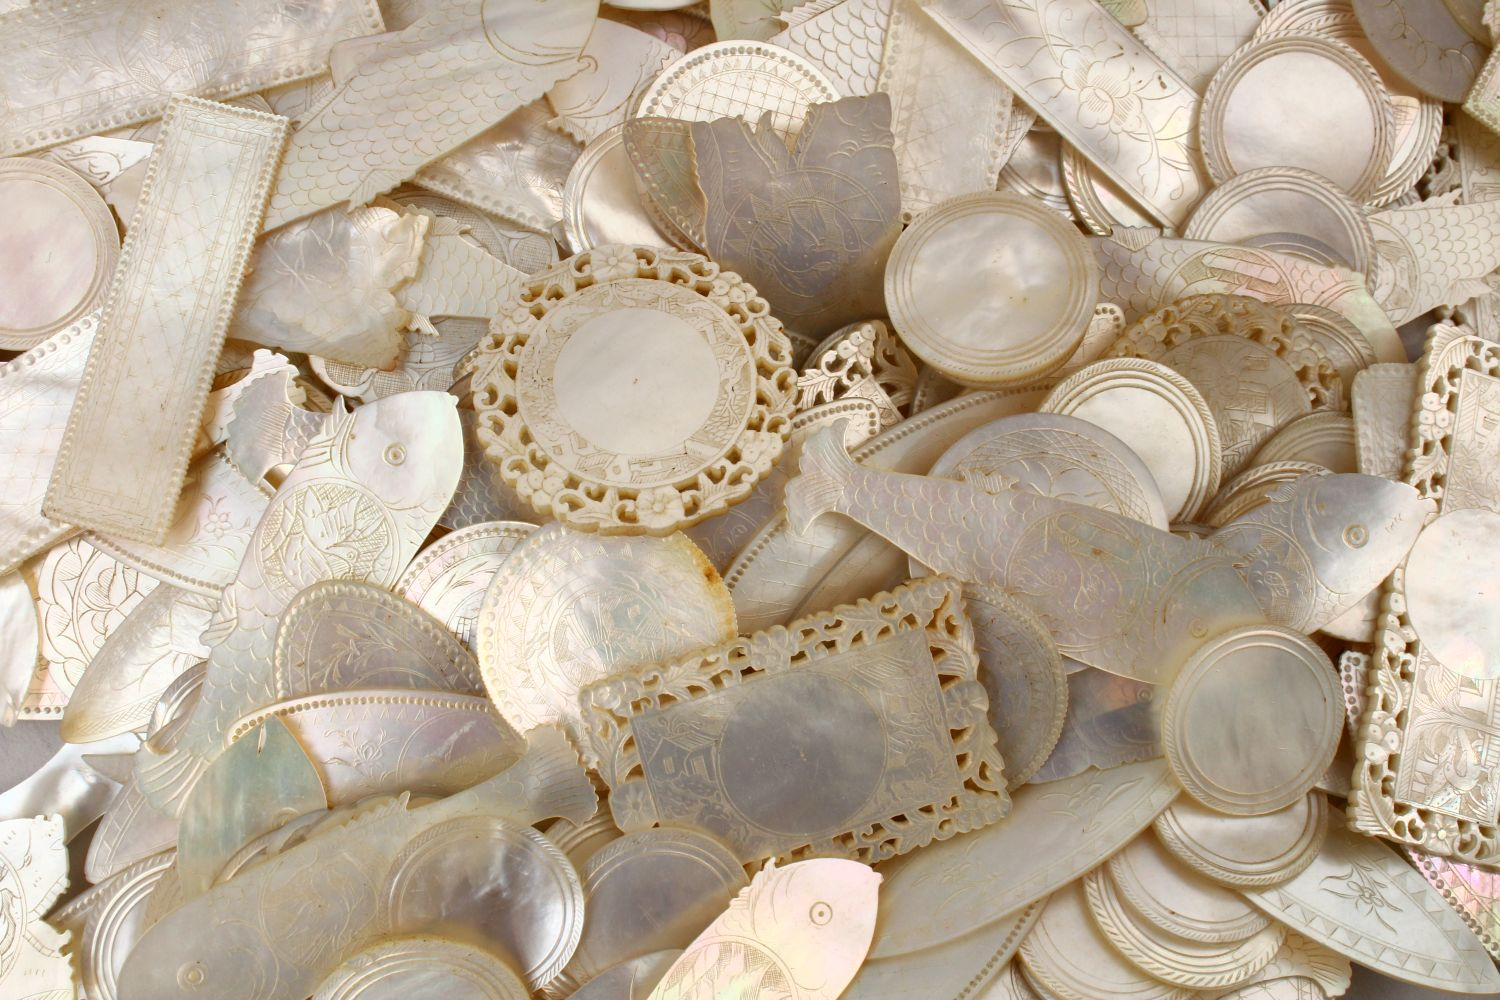 A QUANTITY OF 19TH CENTURY CHINESE CARVED MOTHER OF PEARL GAME COUNTERS, various styles an sizes. - Image 3 of 9